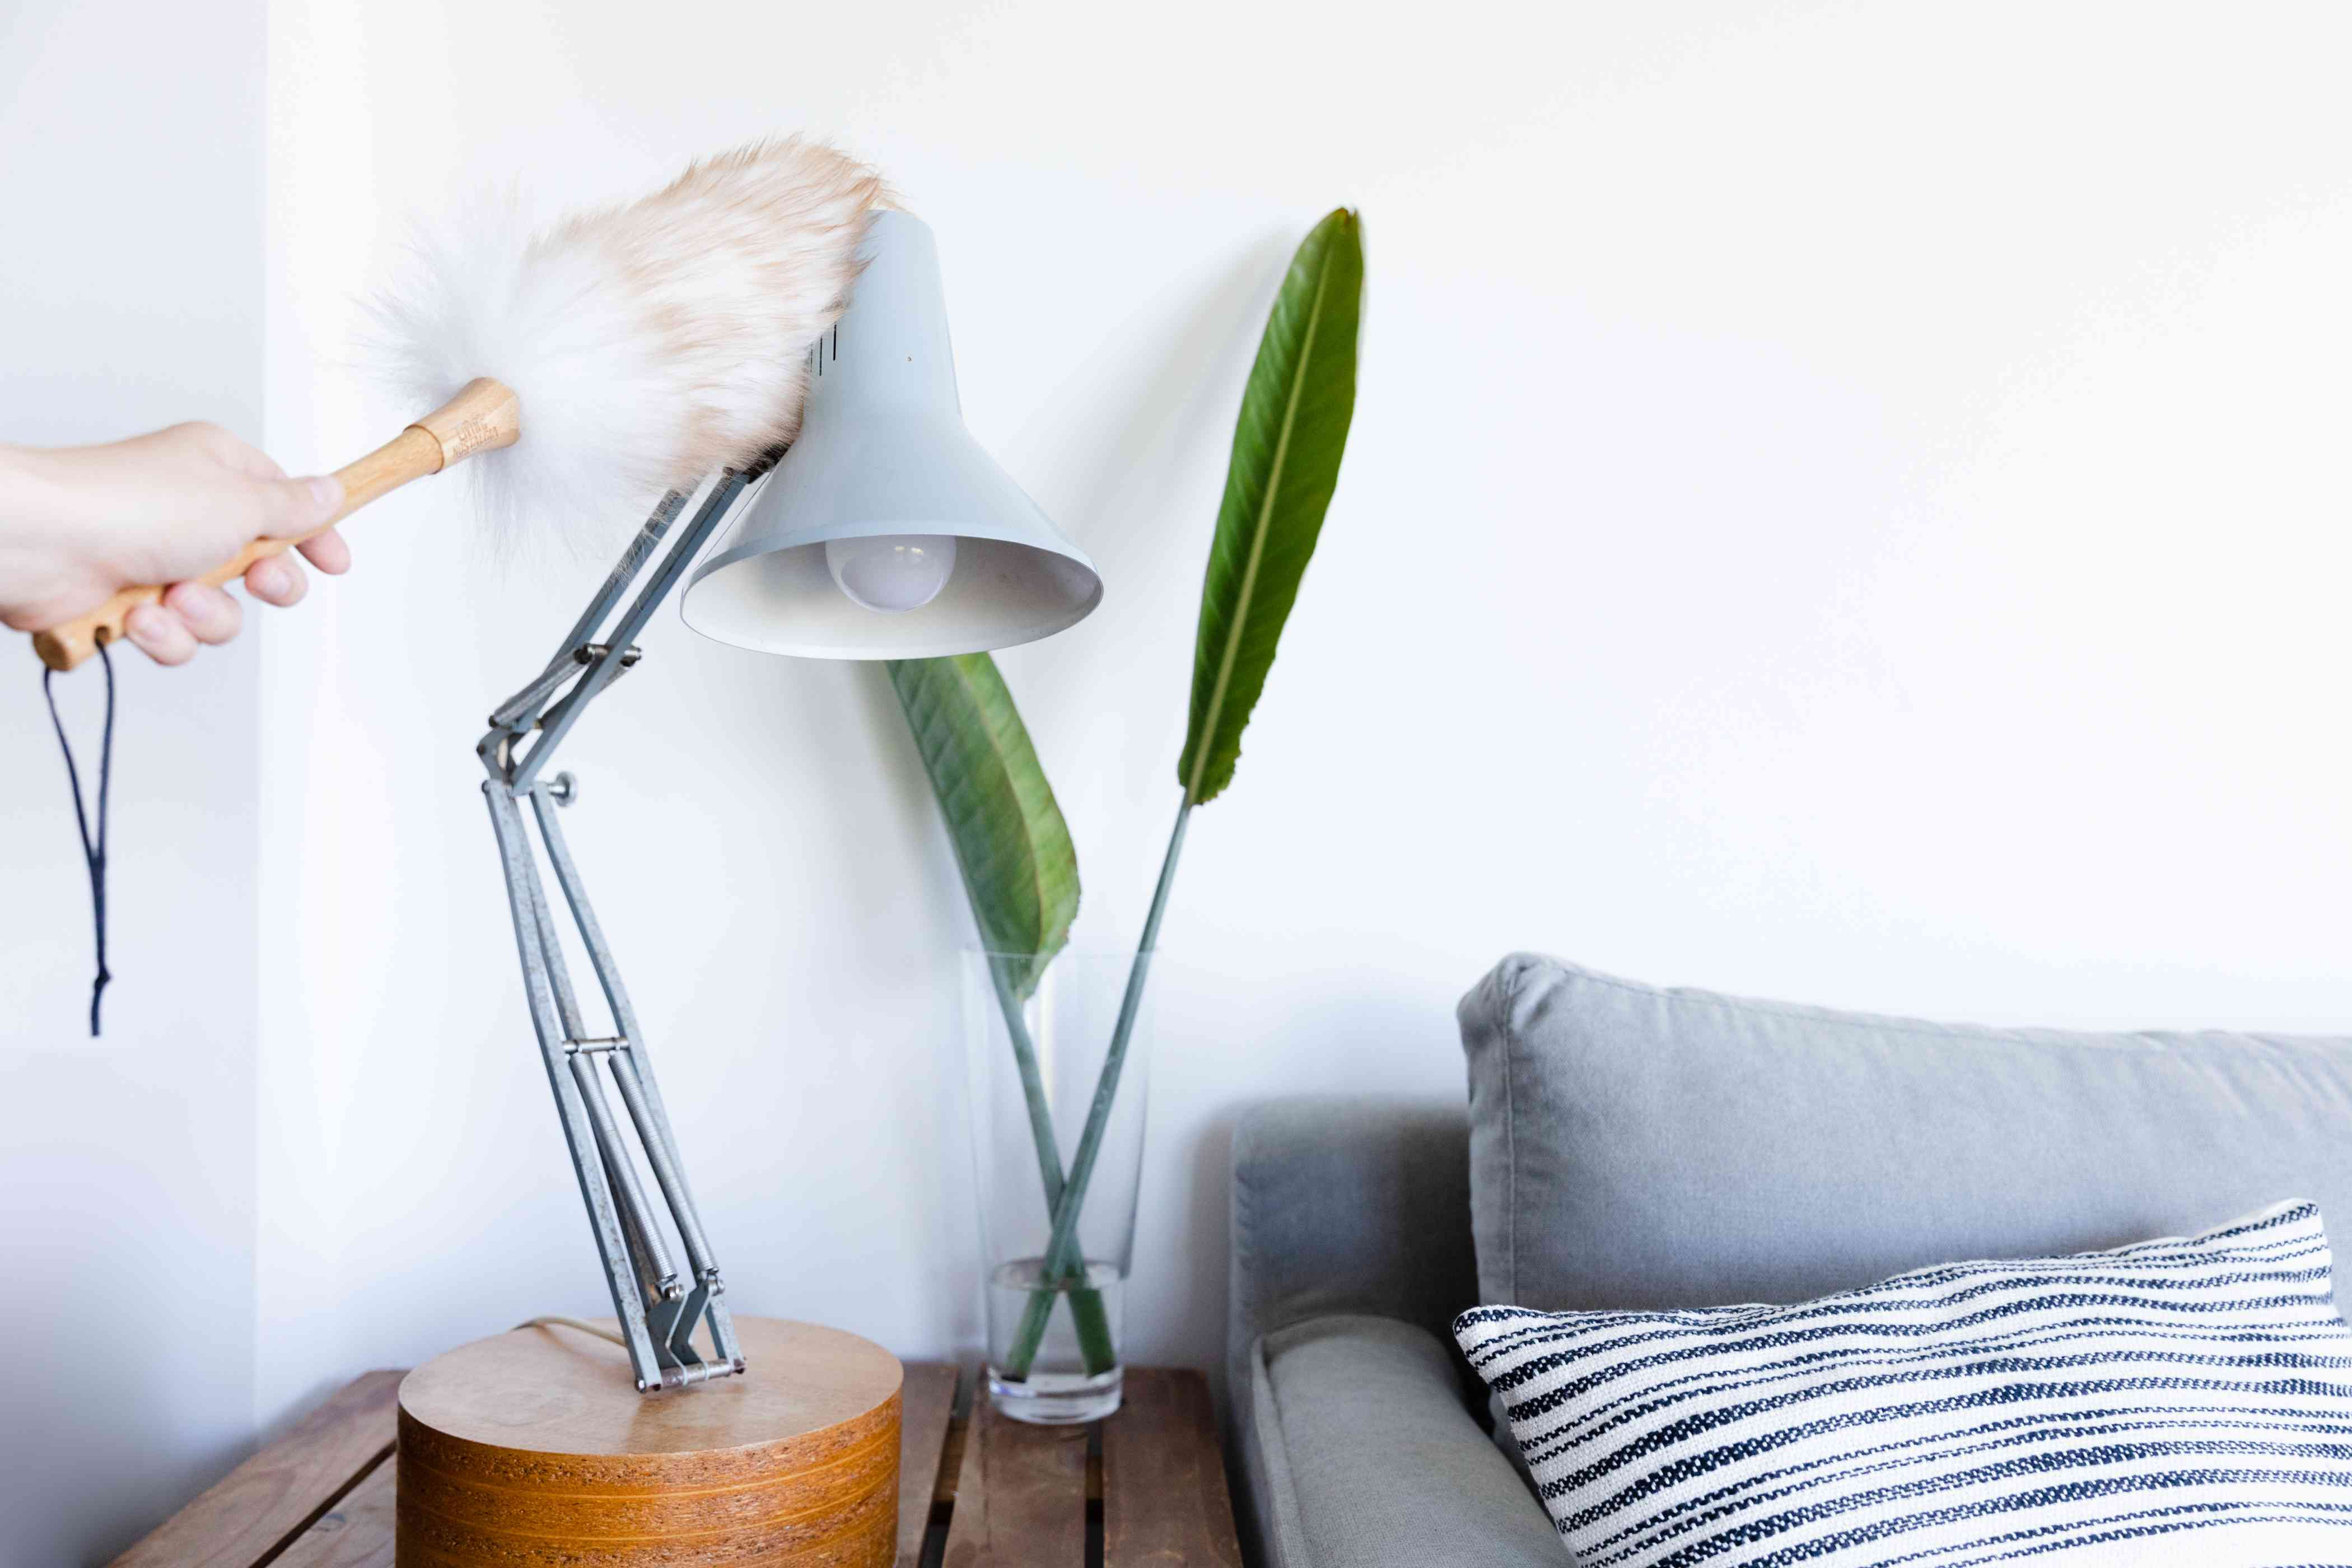 dusting lamps and knick knacks